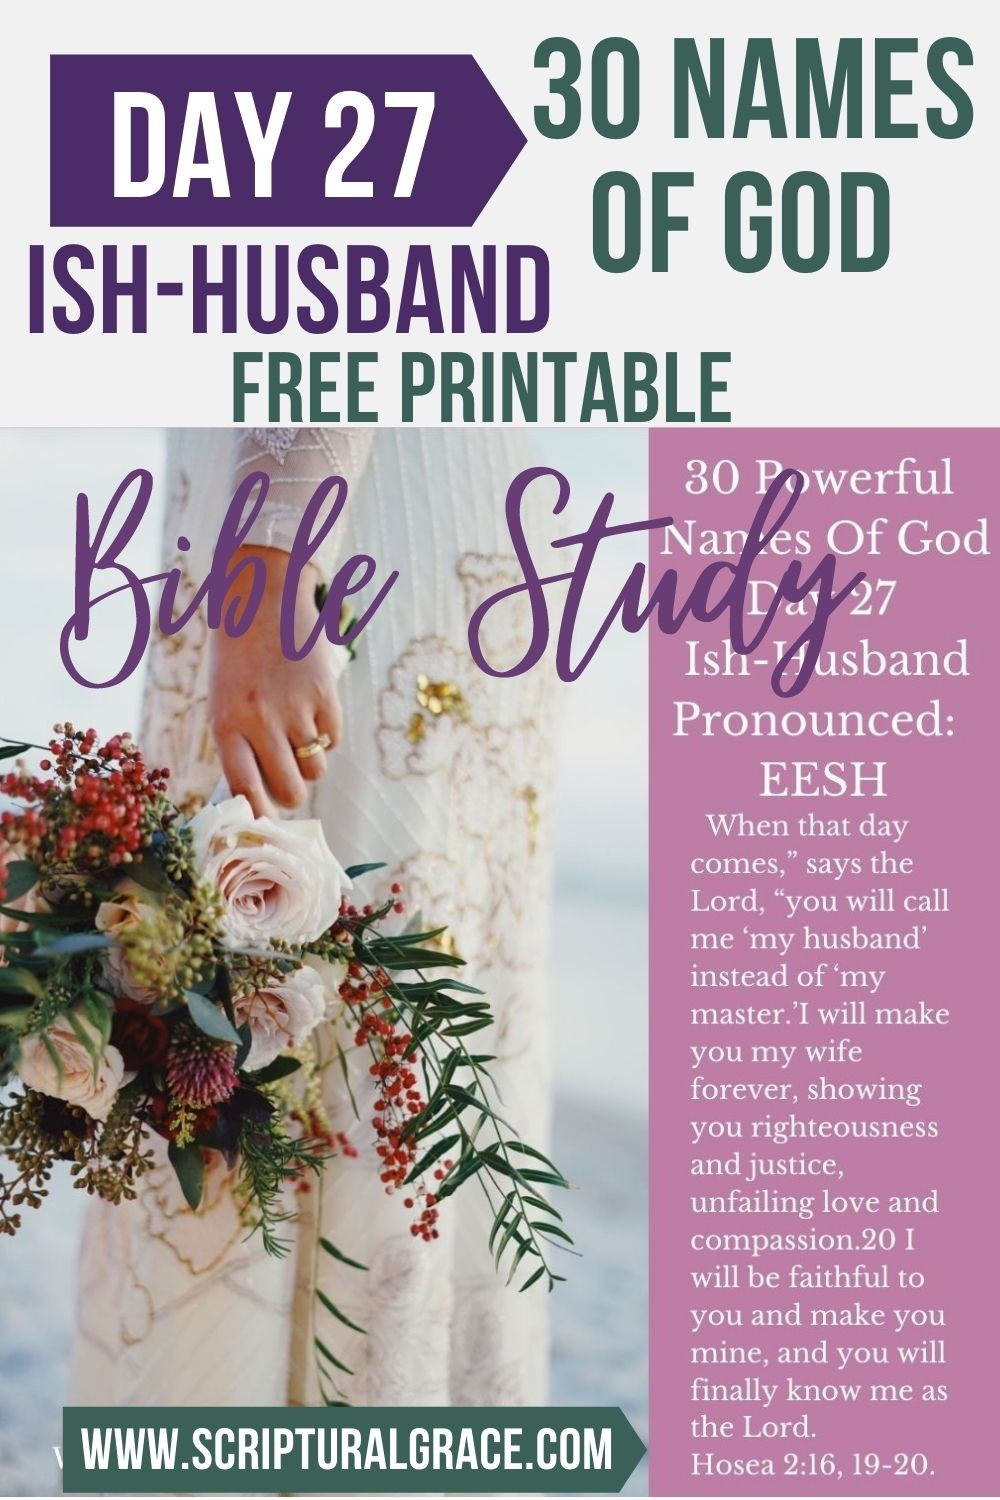 30 Names of God day 27 Ish-Husband bible study and free printable